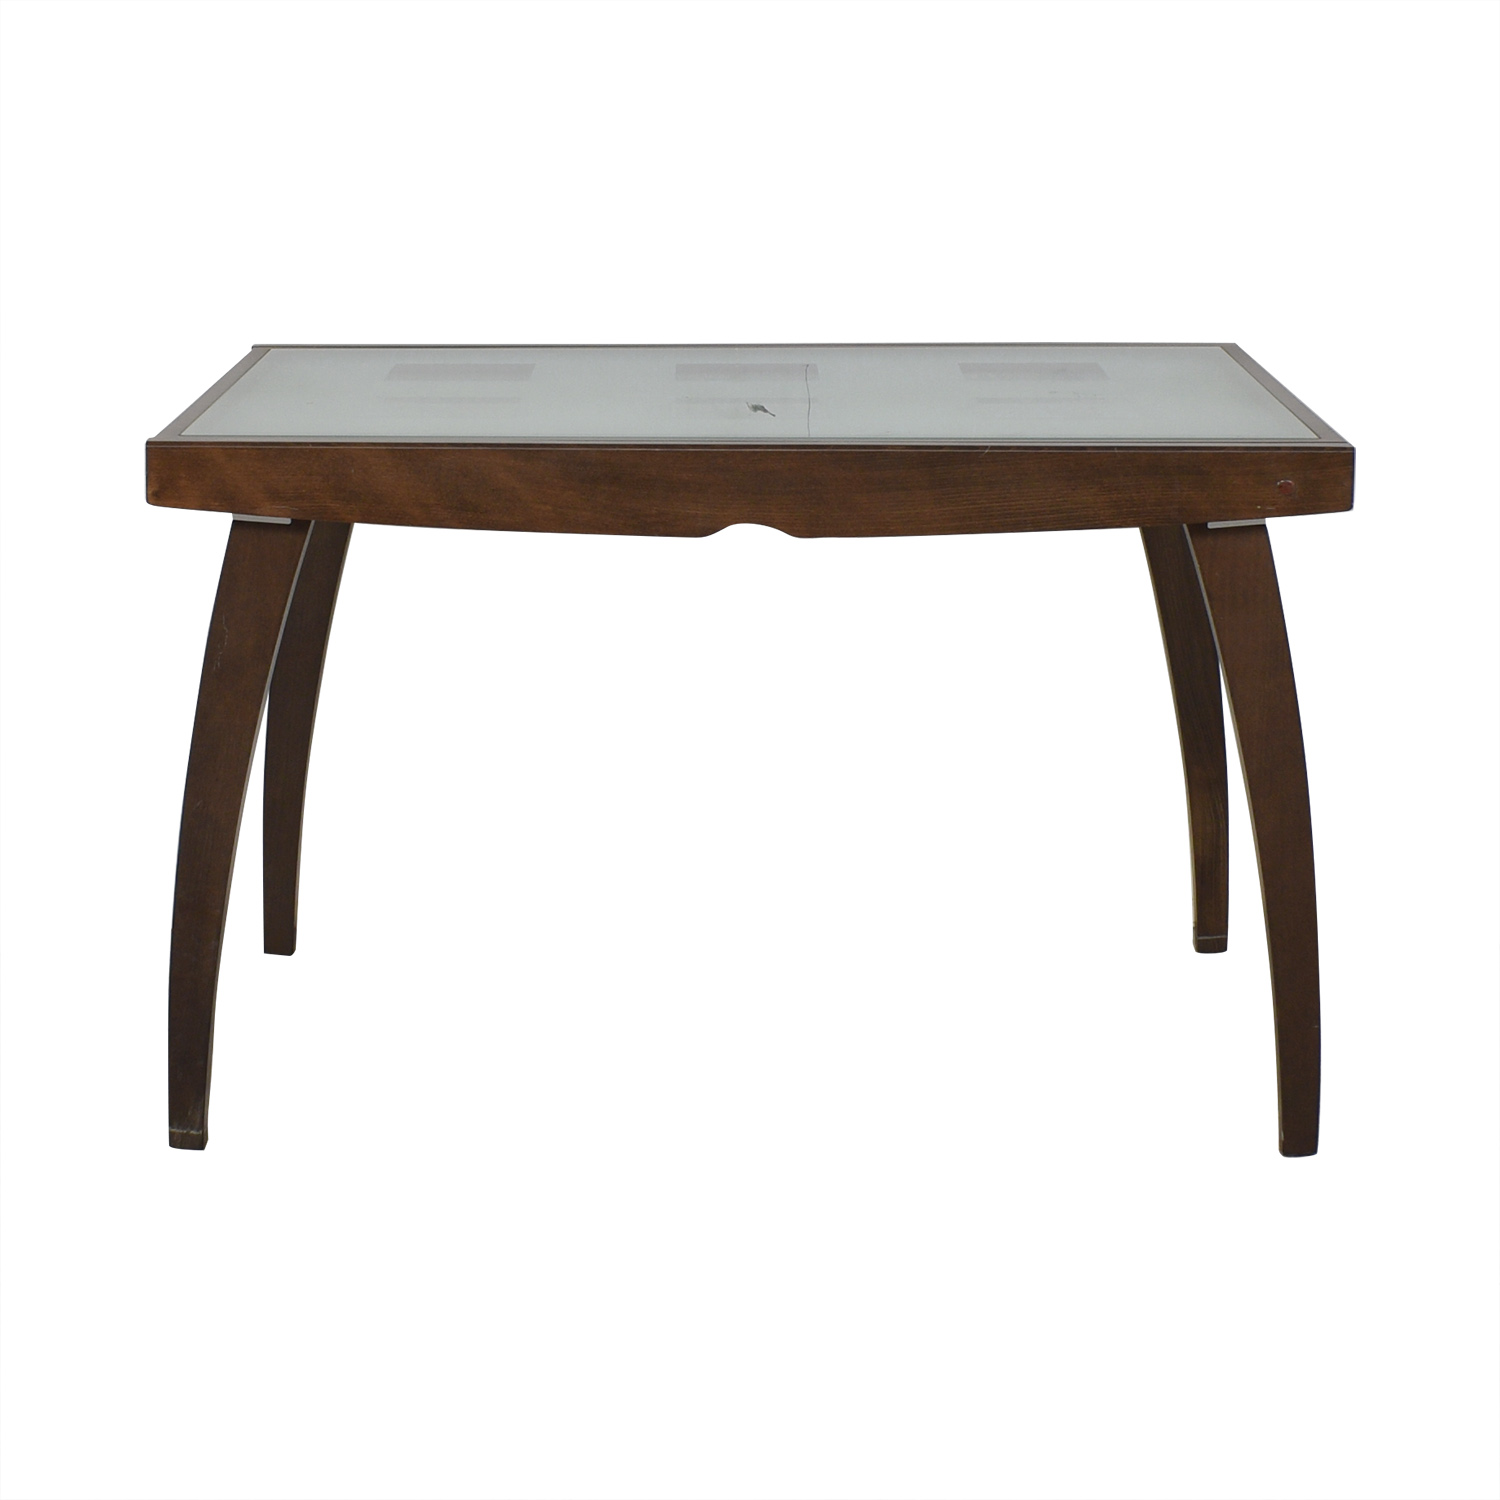 buy Calligaris Bon Ton Extension Dining Table Calligaris Dinner Tables